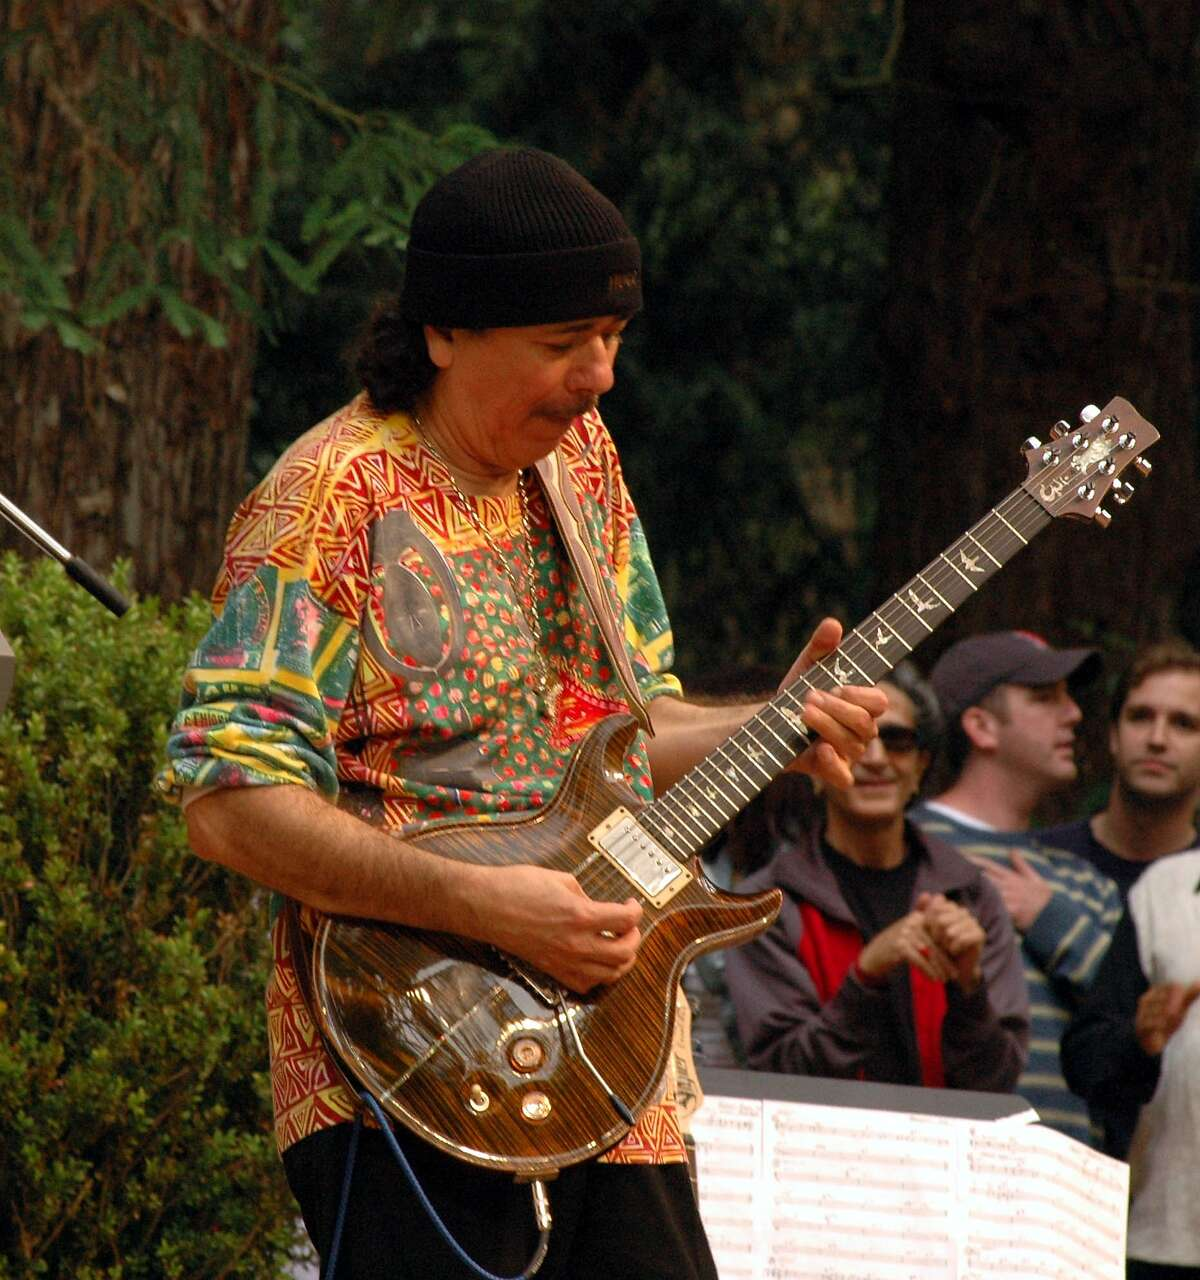 Carlos Santana at Stern Grove on July 25, 1999. His surprise appearance with Khaled raised that performance onto Doug Goldman's top three shows he has seen in 25 years on the board of the Stern Grove Festival.